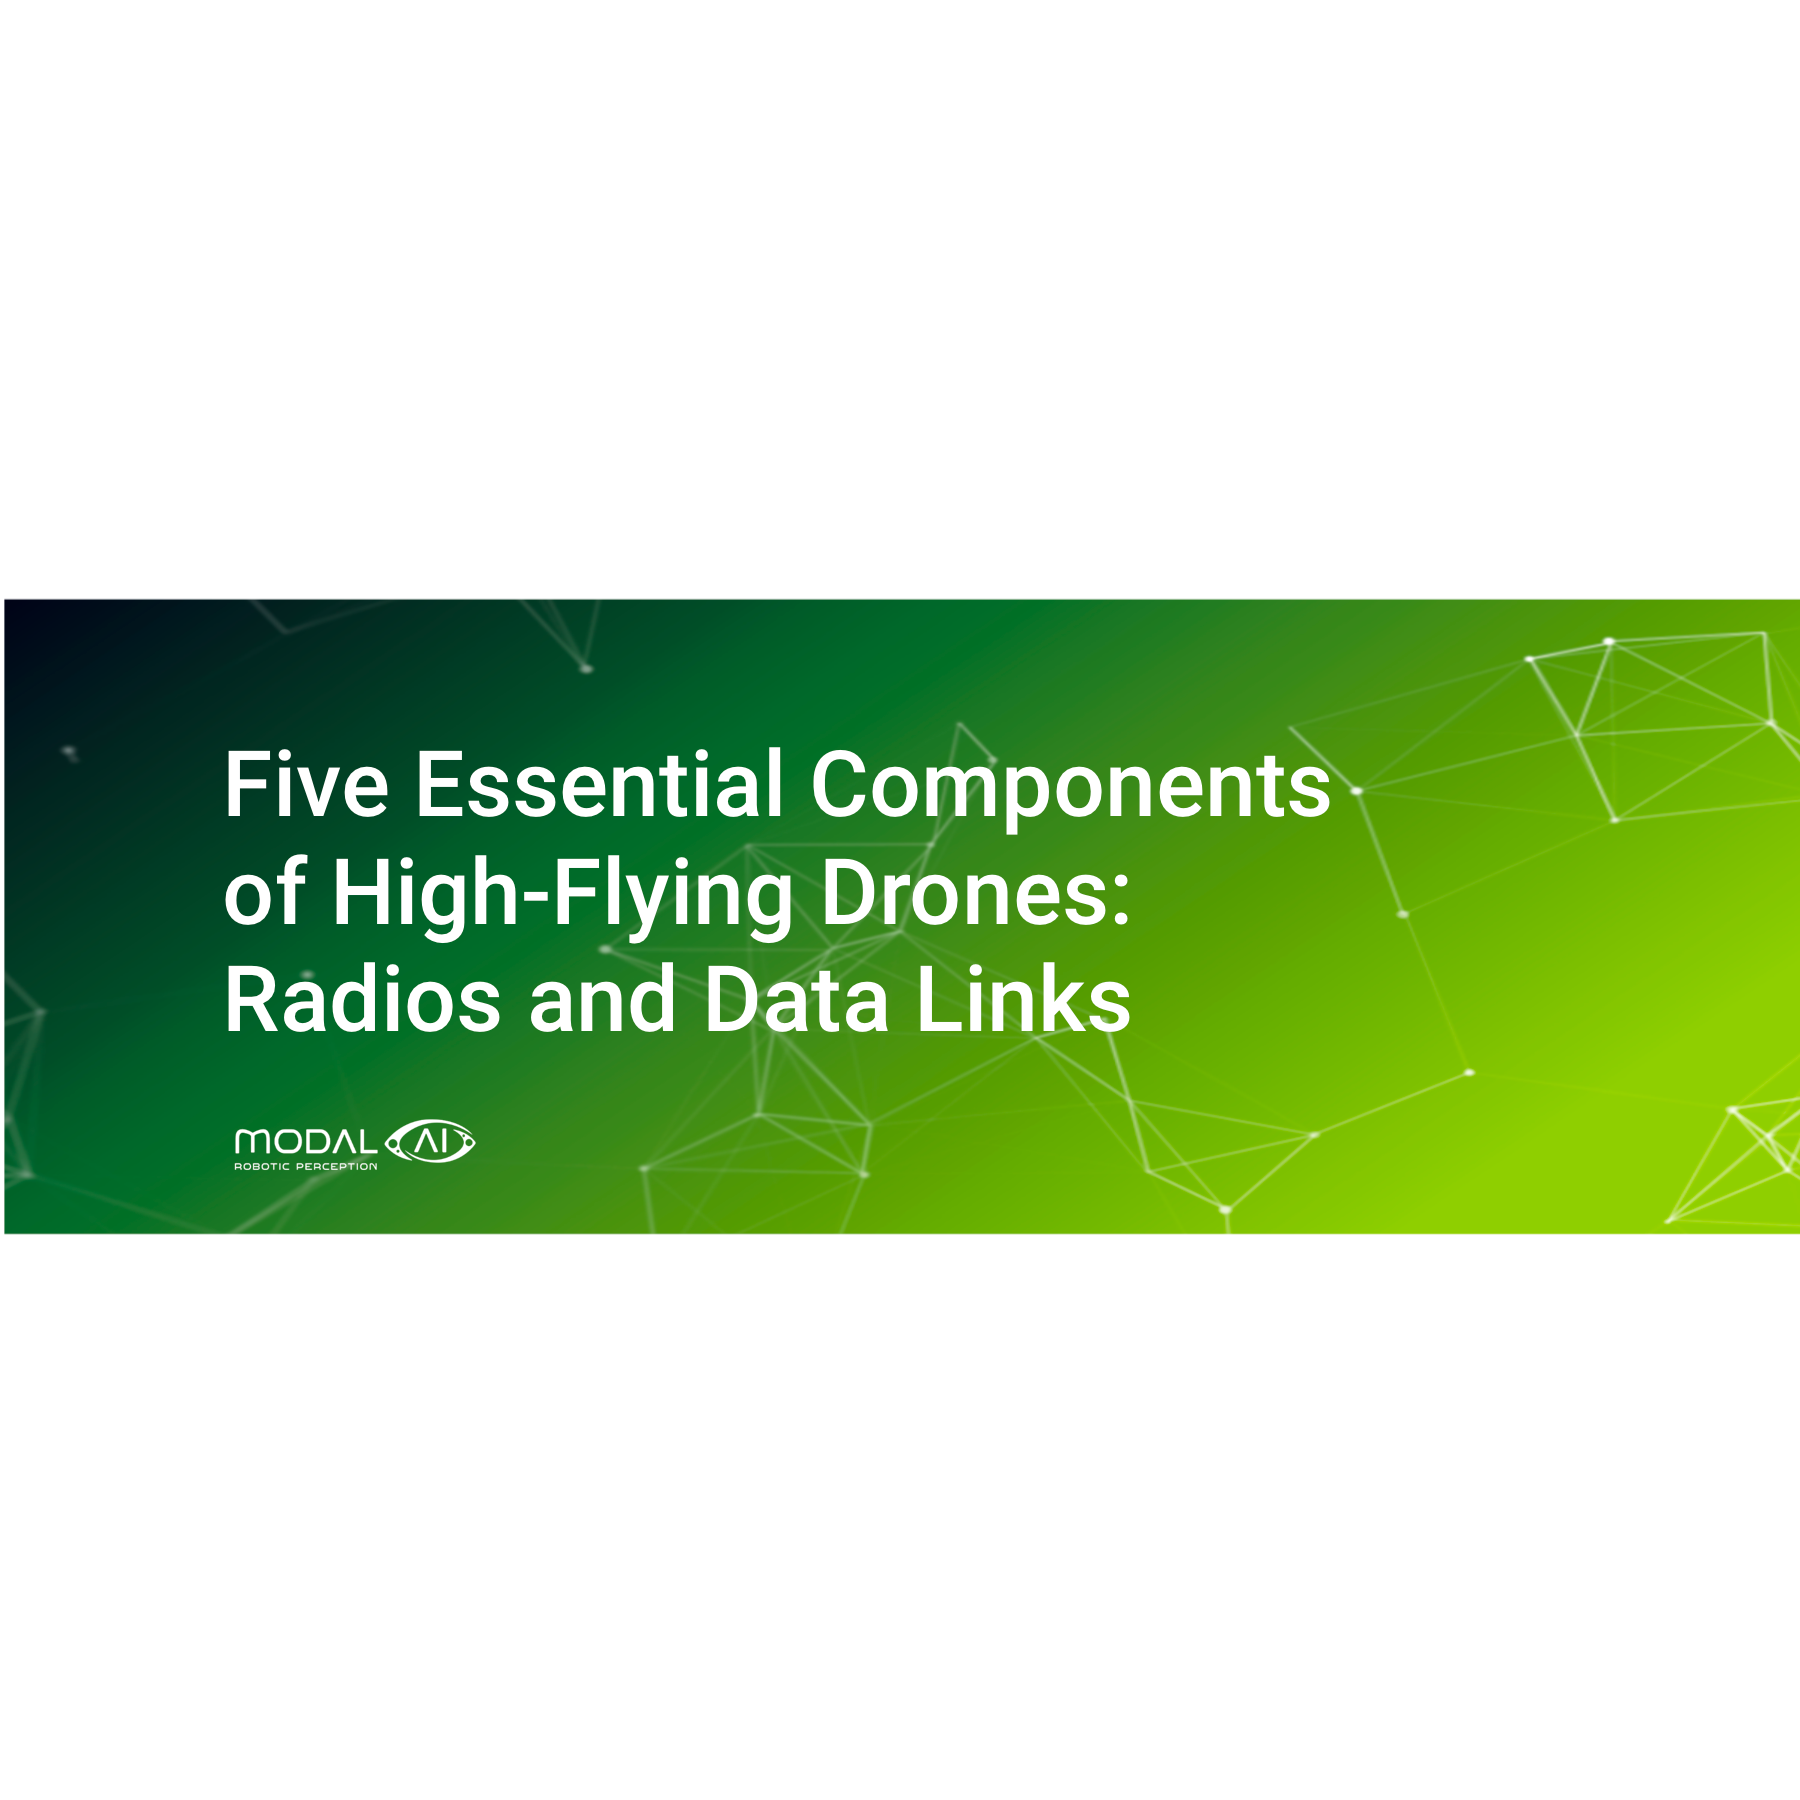 Five Essential Components of High Flying Drones: Radios and Data Links